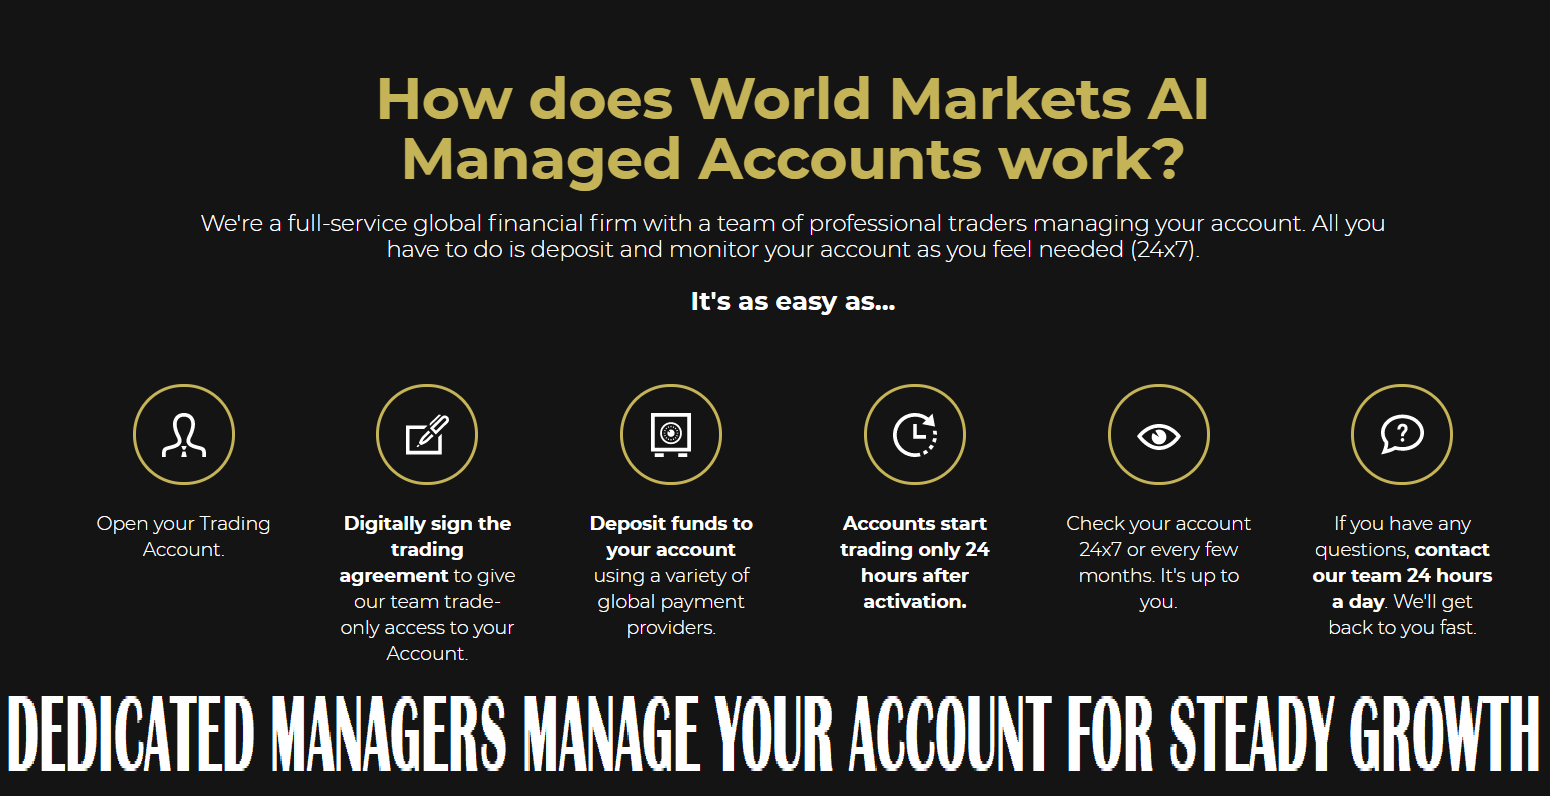 world markets ai managed account